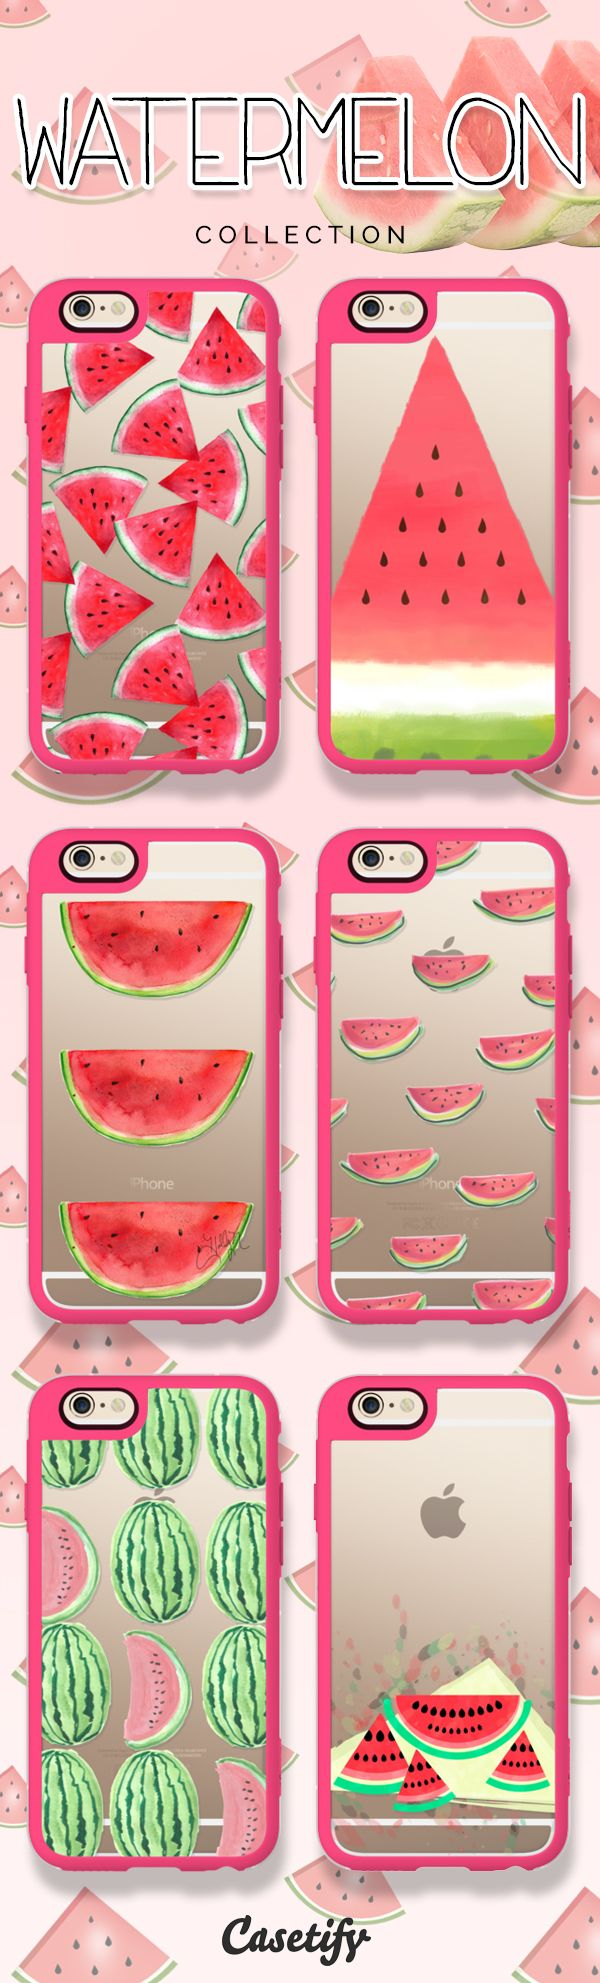 Don't let the seeds stop you from enjoying the watermelon. Take a look at these cases featuring watermelons on our site now! https://www.casetify.com/artworks/KLKjFrlyfI | @casetify